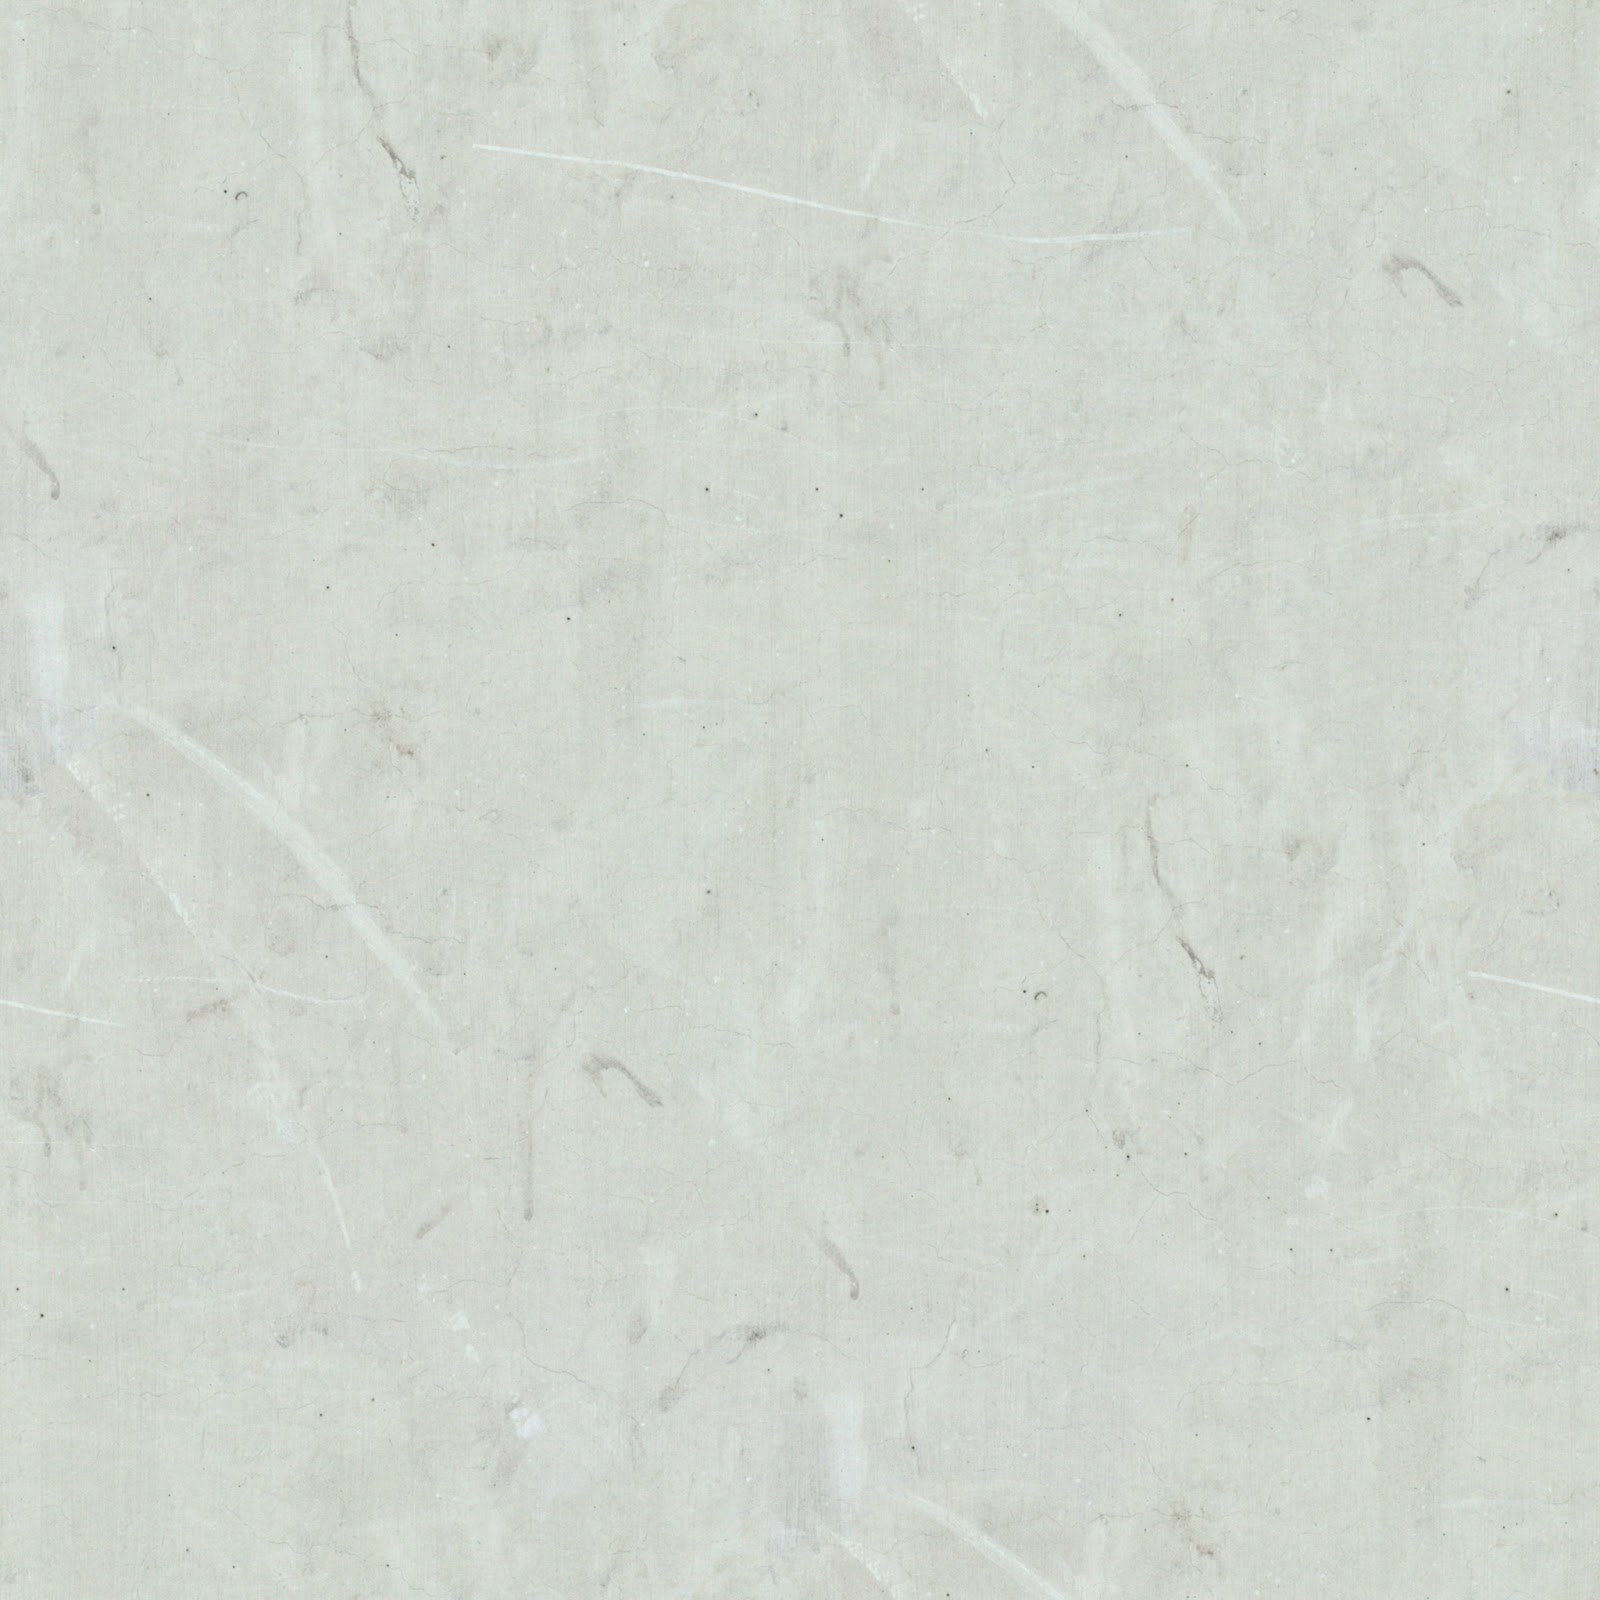 stained concrete texture seamless. Concrete Wall Smooth White Grunge Seamless Texture 2048x2048 Stained